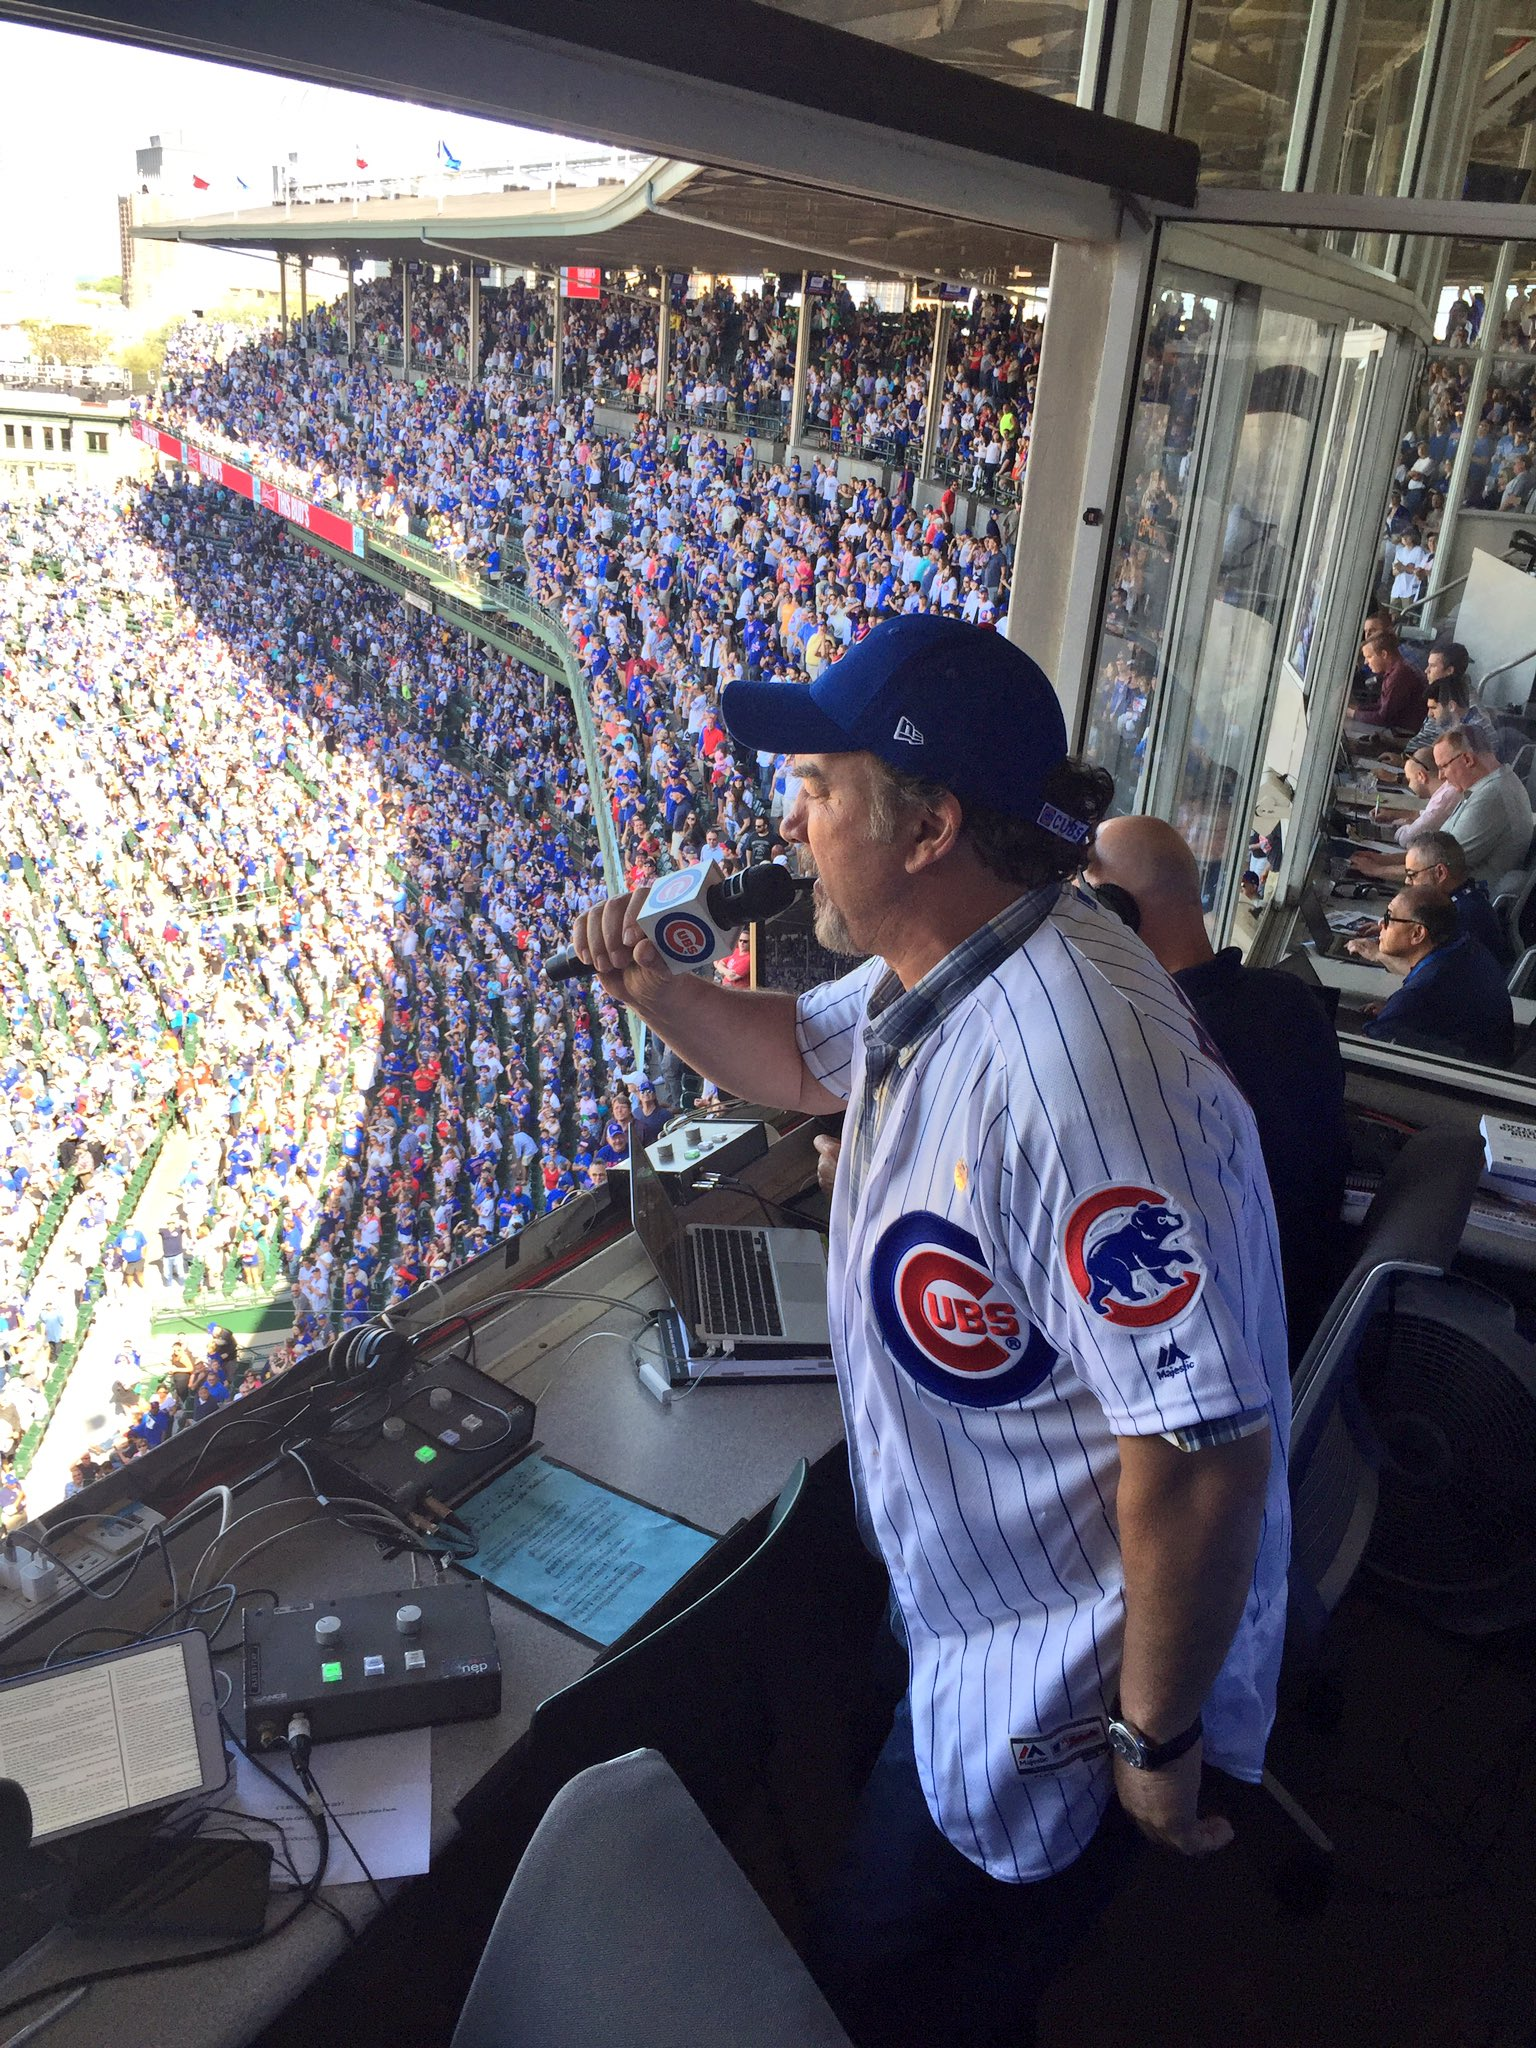 Sing that classic Chicago tune, @JimBelushi! �� https://t.co/6r164EX8K6